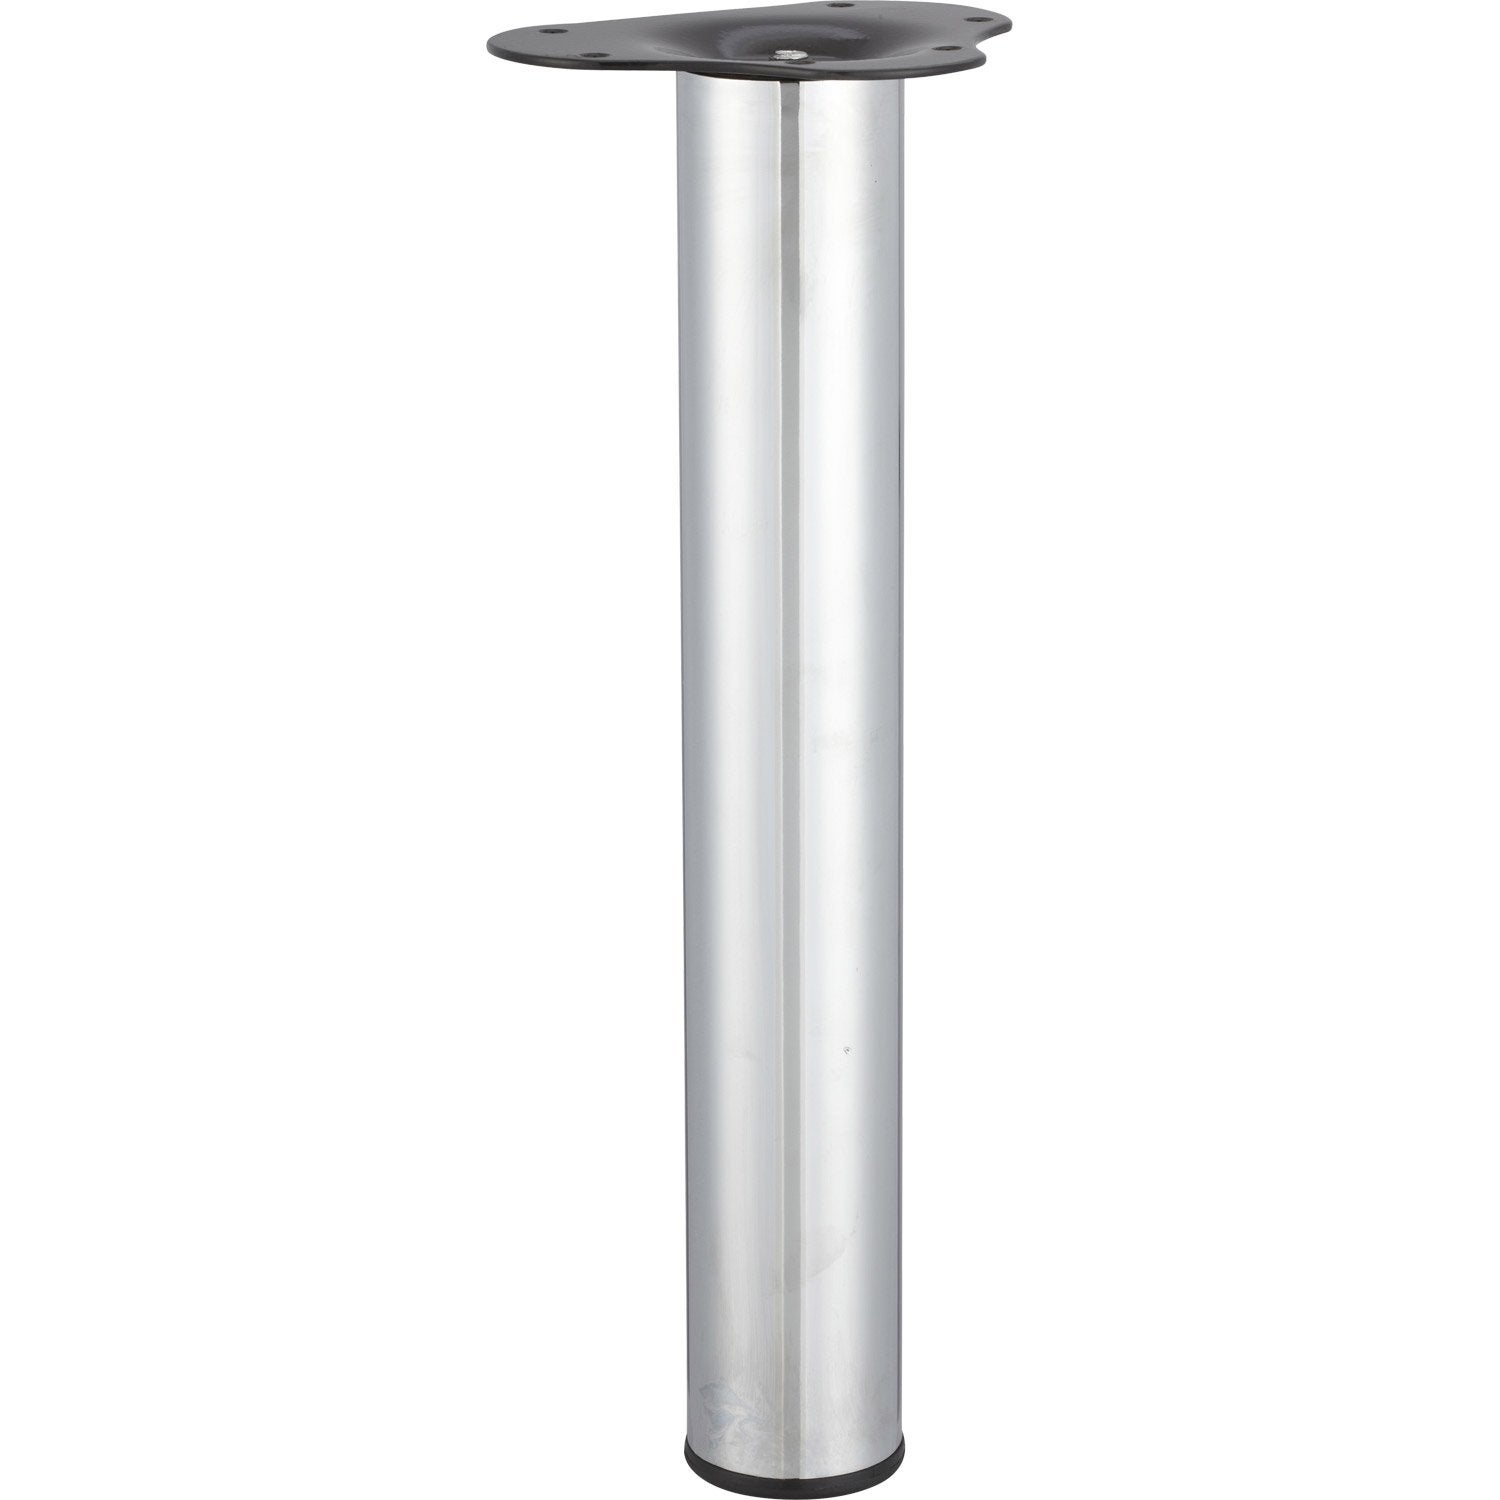 Pied de table basse cylindrique r glable acier chrom gris de 40 43 cm leroy merlin - Ikea pied de table ...